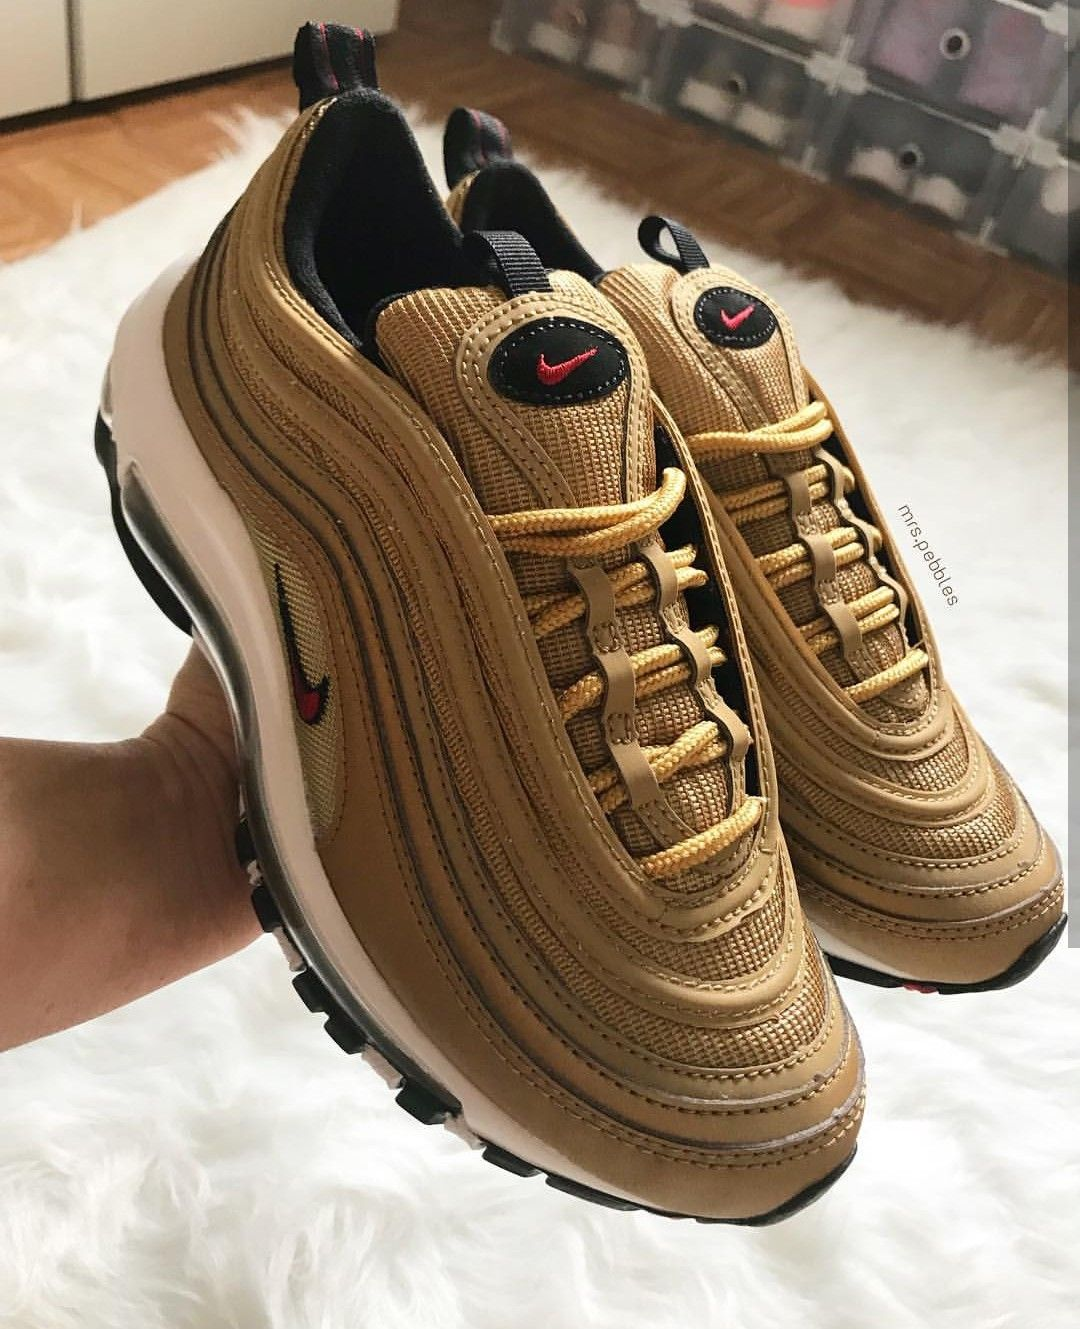 competitive price 3a815 d9054 Nike Air Max 97 in gold schwarz   red swoosh    Foto  mrs.pebbles  Instagram